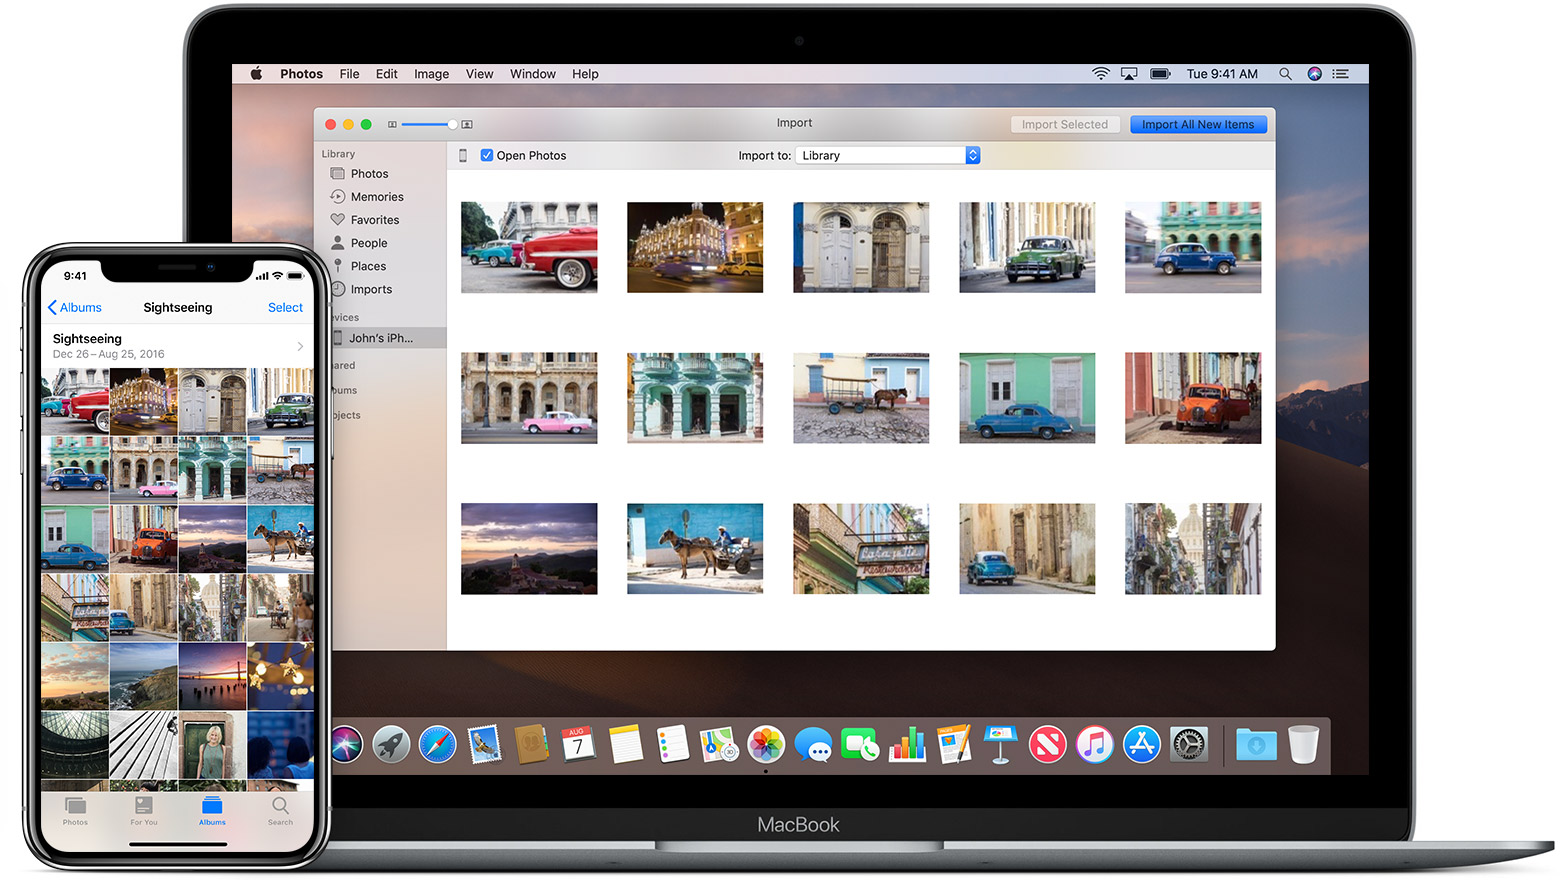 How can i download photos from my iphone to my imac